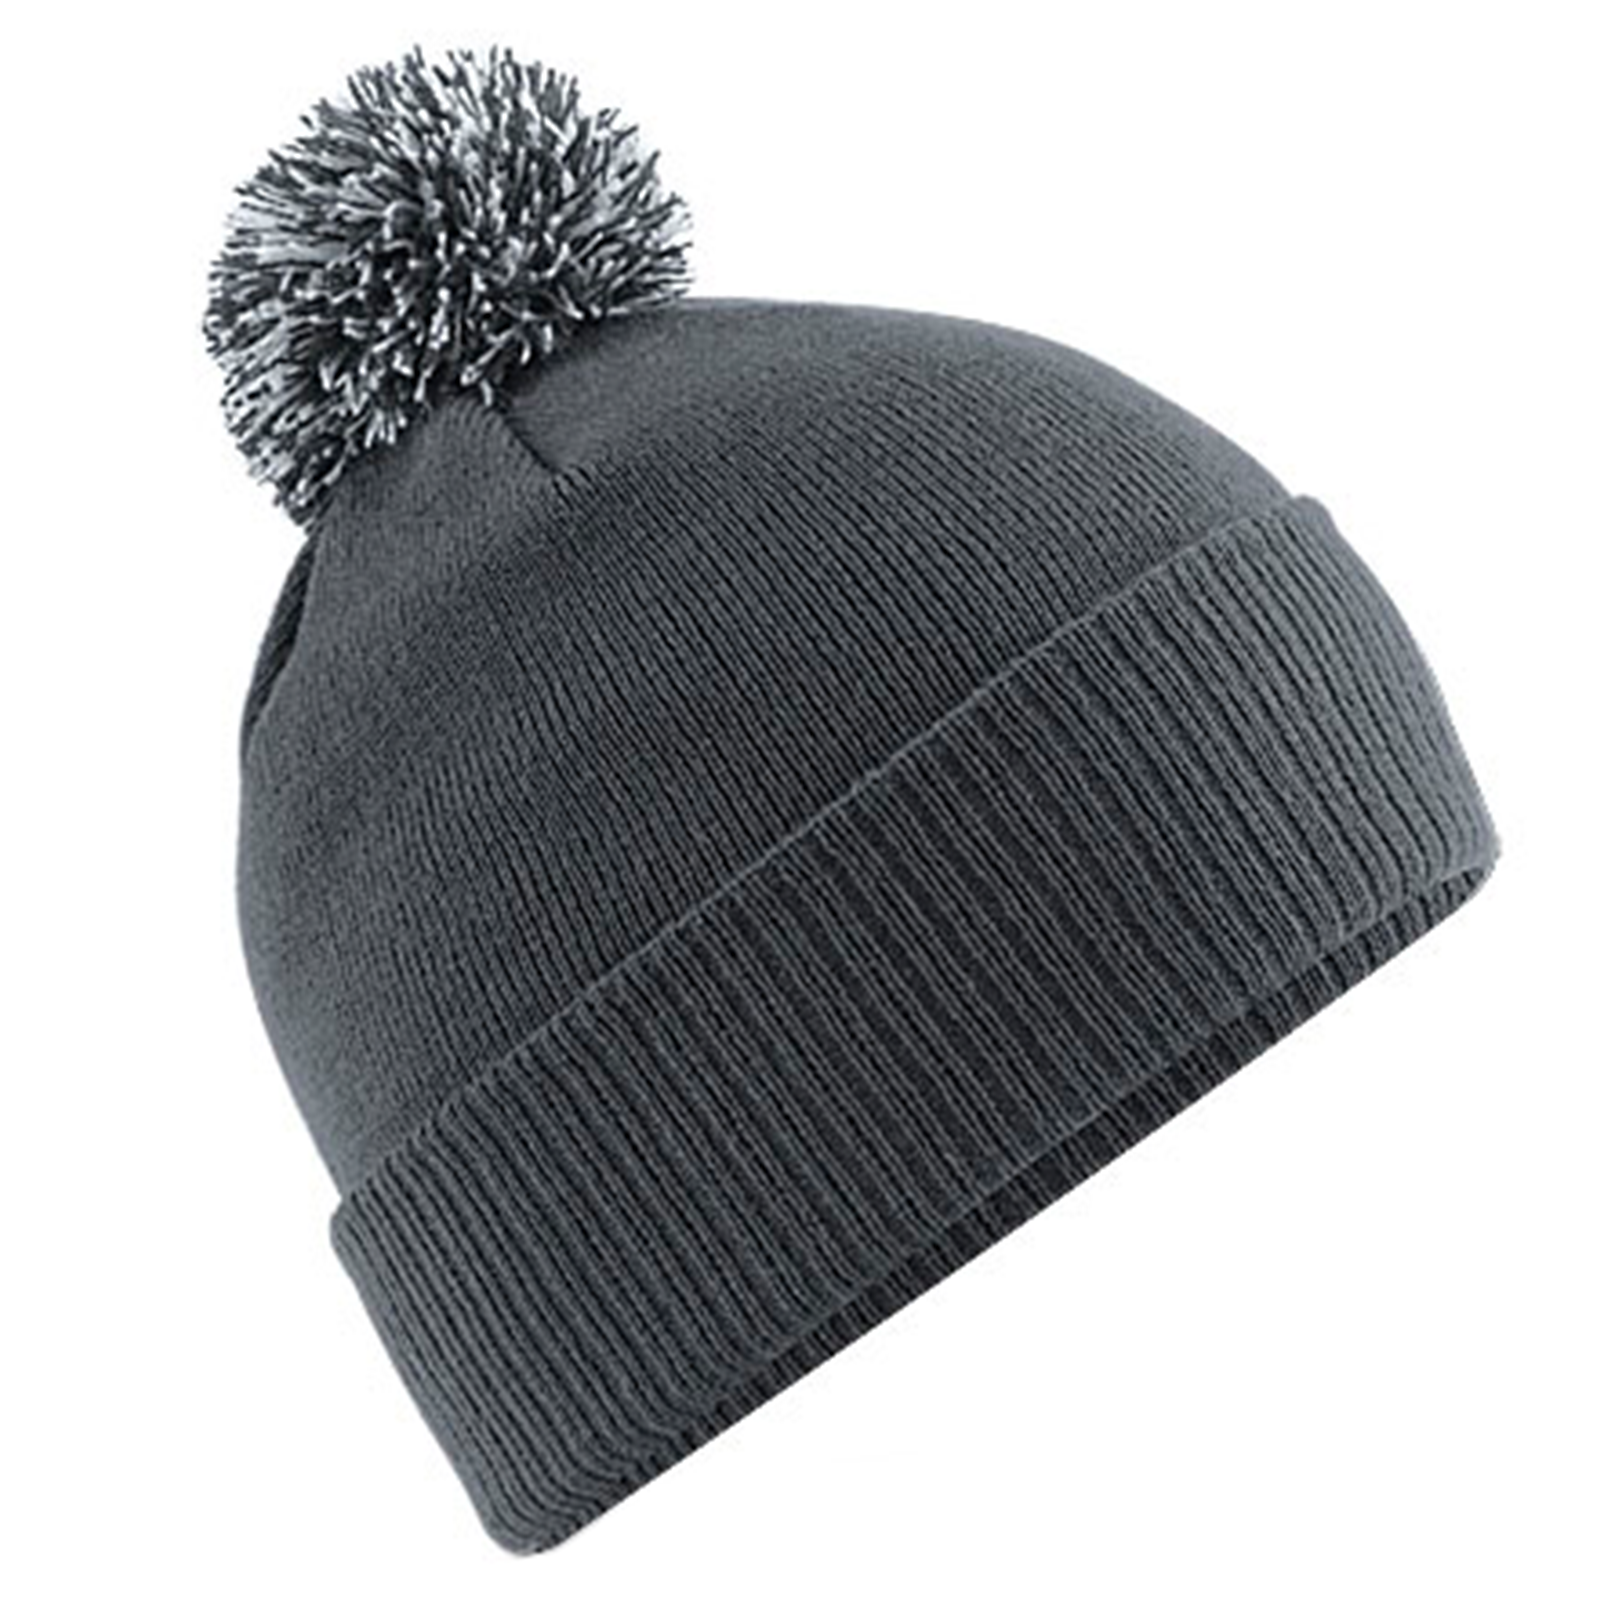 We design, knit and finish knitted hats in our Scottish Borders workshop. We provide a custom design service, manufacturing bespoke bobble hats for you!